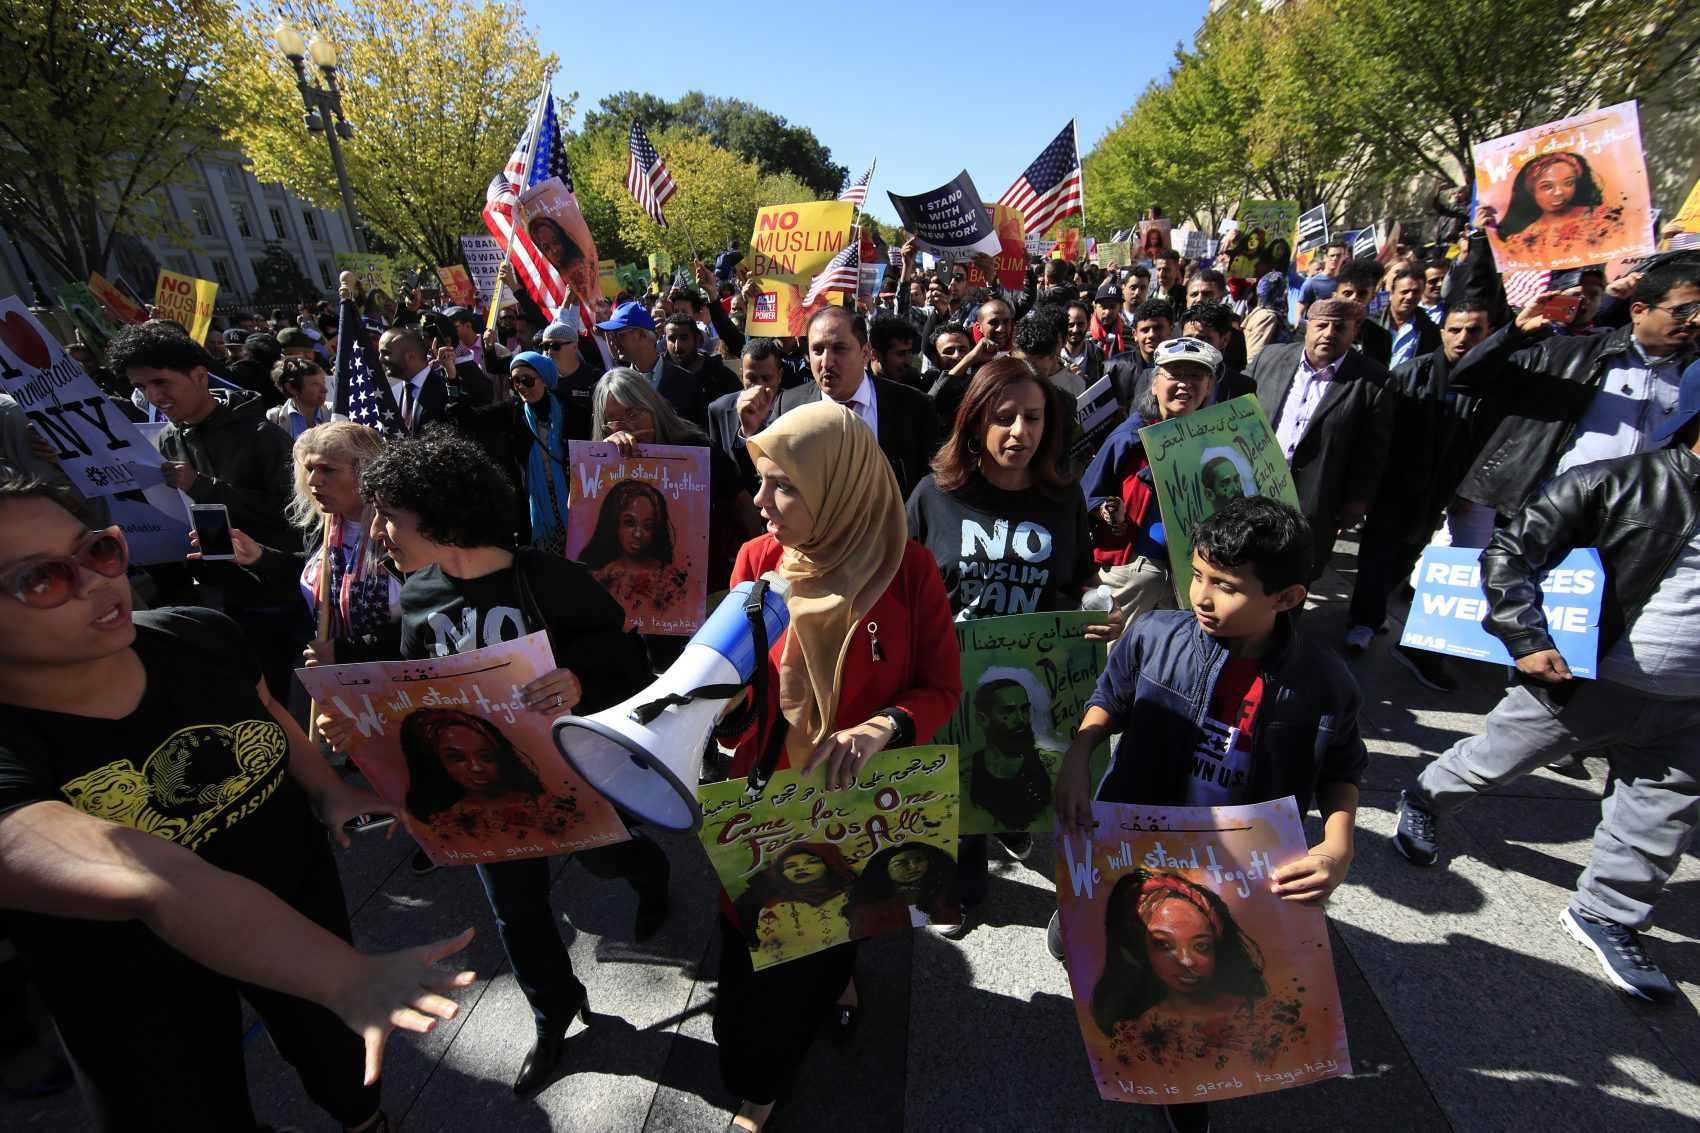 """Muslim, civil rights groups and their supporters gather at a rally against what they call a """"Muslim ban"""" in front of the White House in Washington, Wednesday, Oct. 18, 2017. (Manuel Balce Ceneta/AP)"""